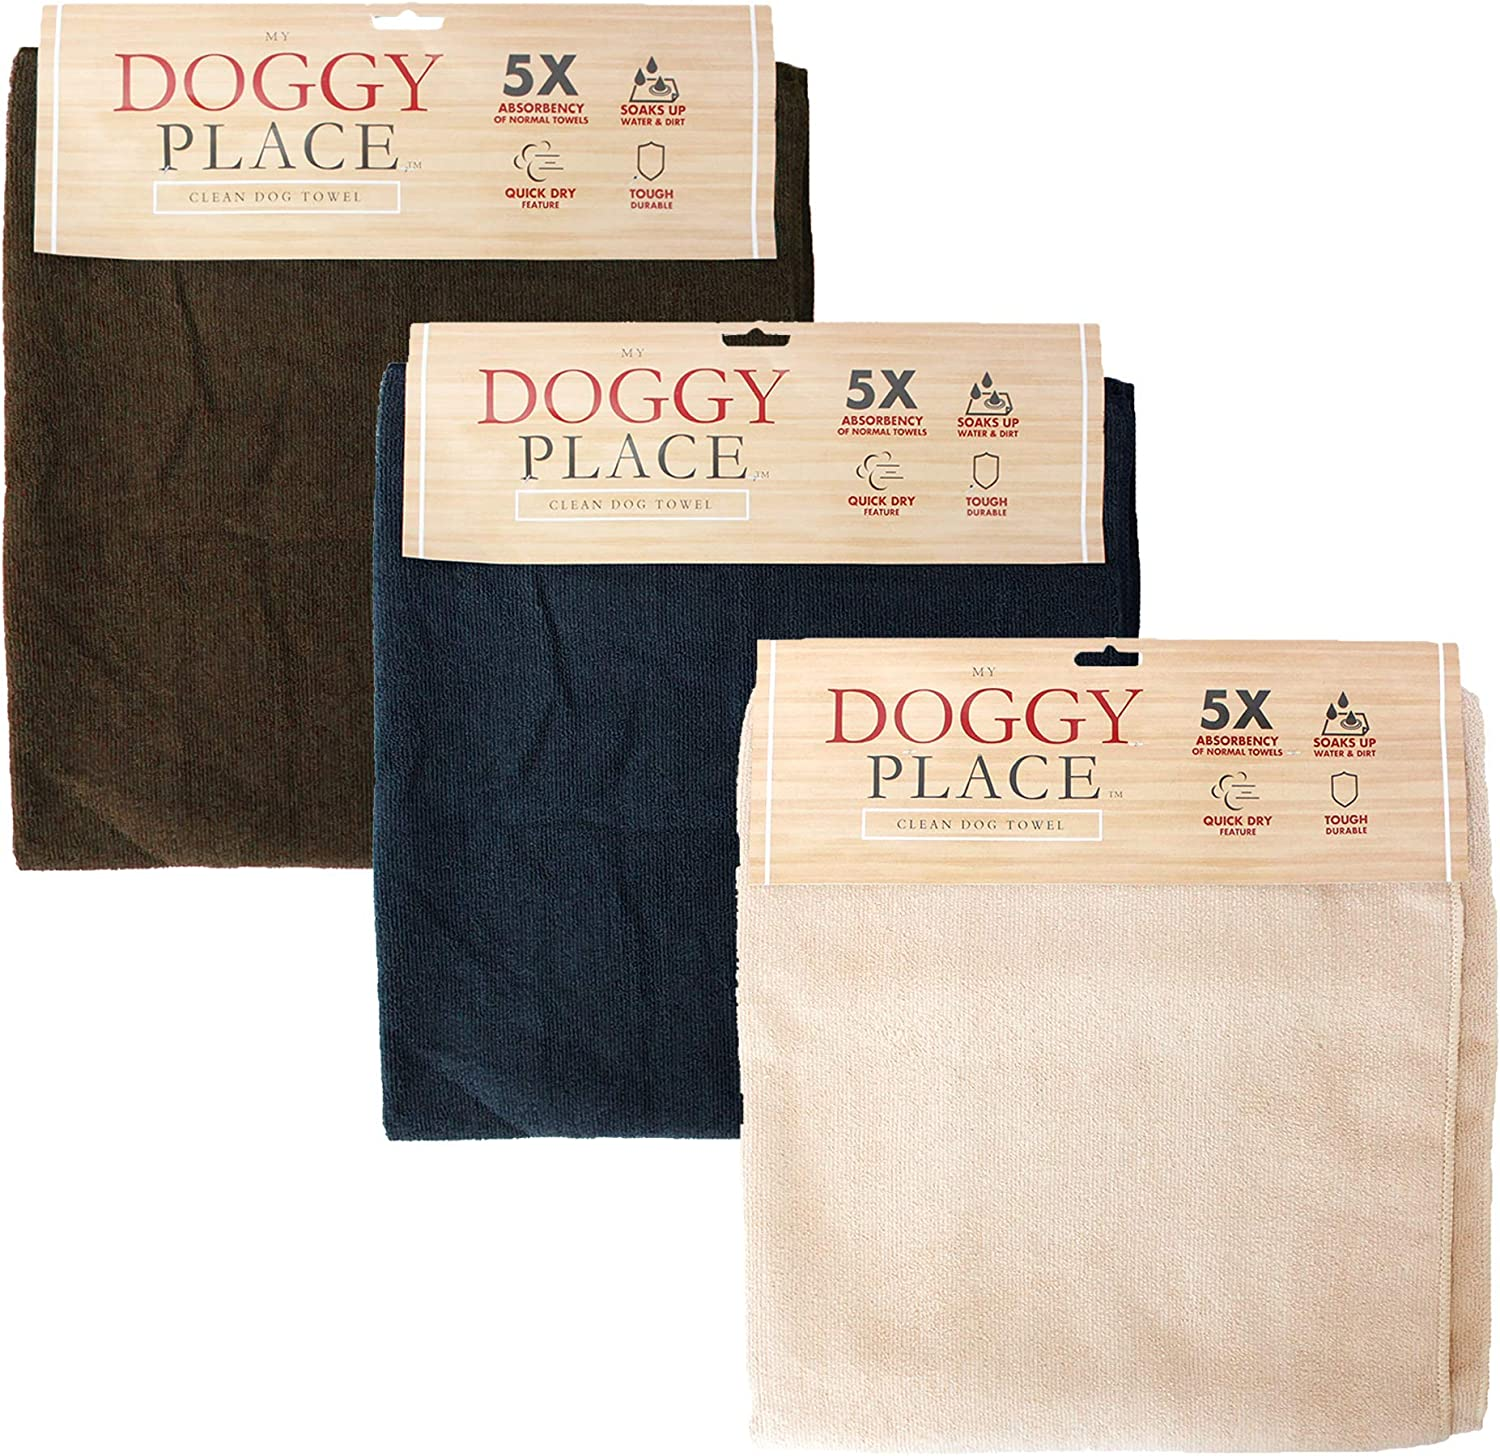 My Doggy Place Dog Cat Microfiber XL Drying Towel 45 x 28